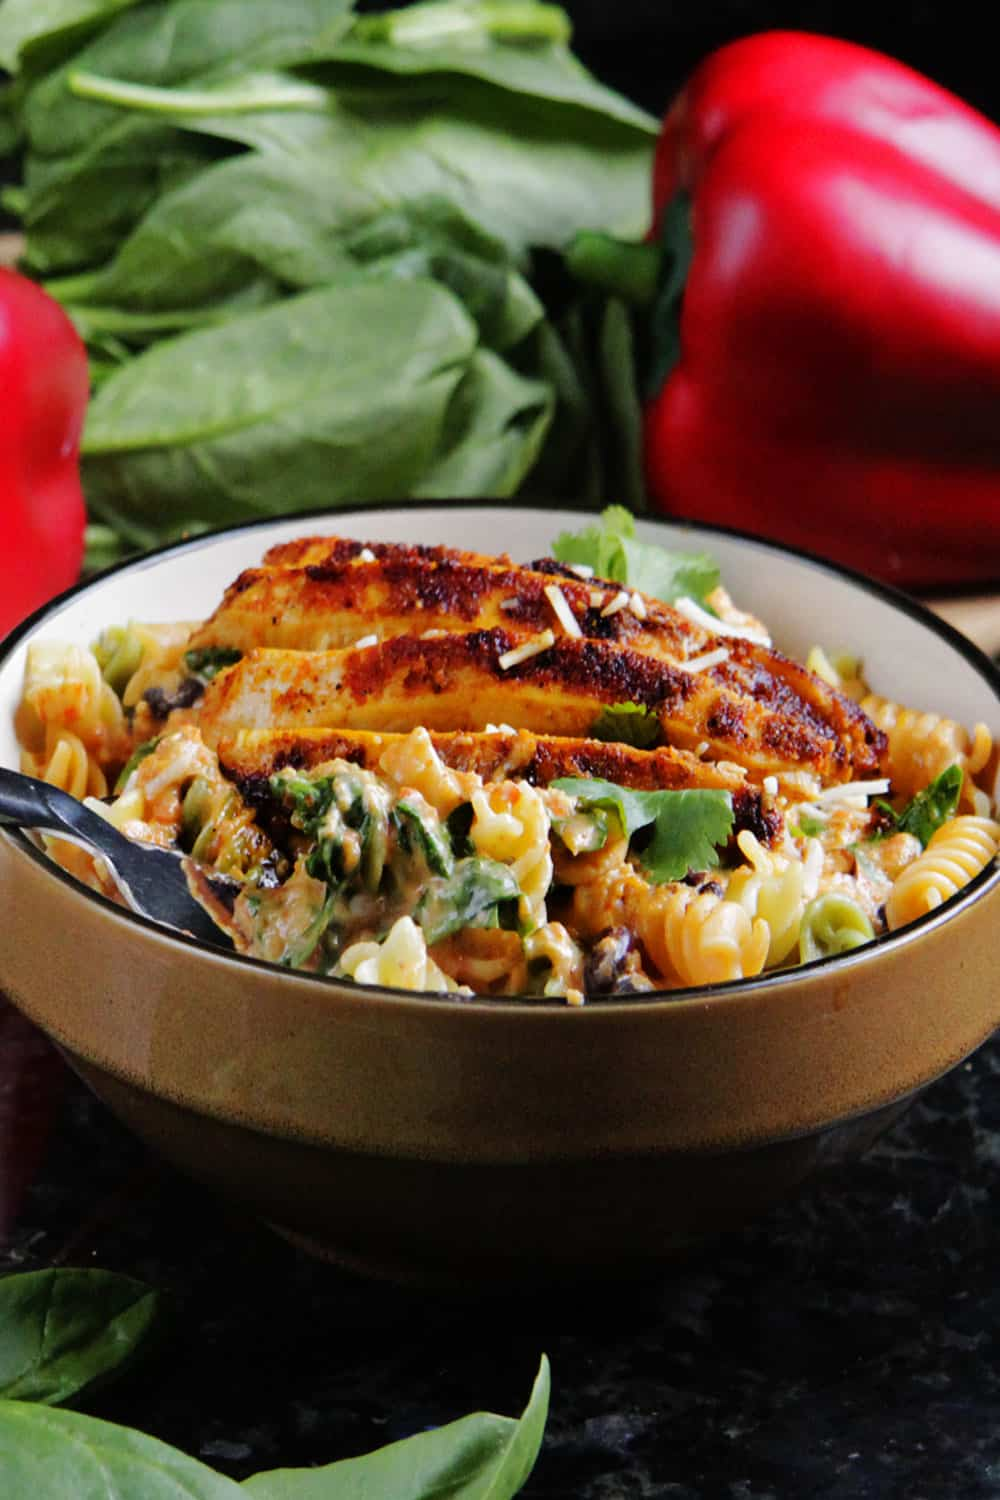 TexMex-Creamy-Roasted-Red-Pepper-Pasta-with-Blackened-Chipotle-Chicken-03